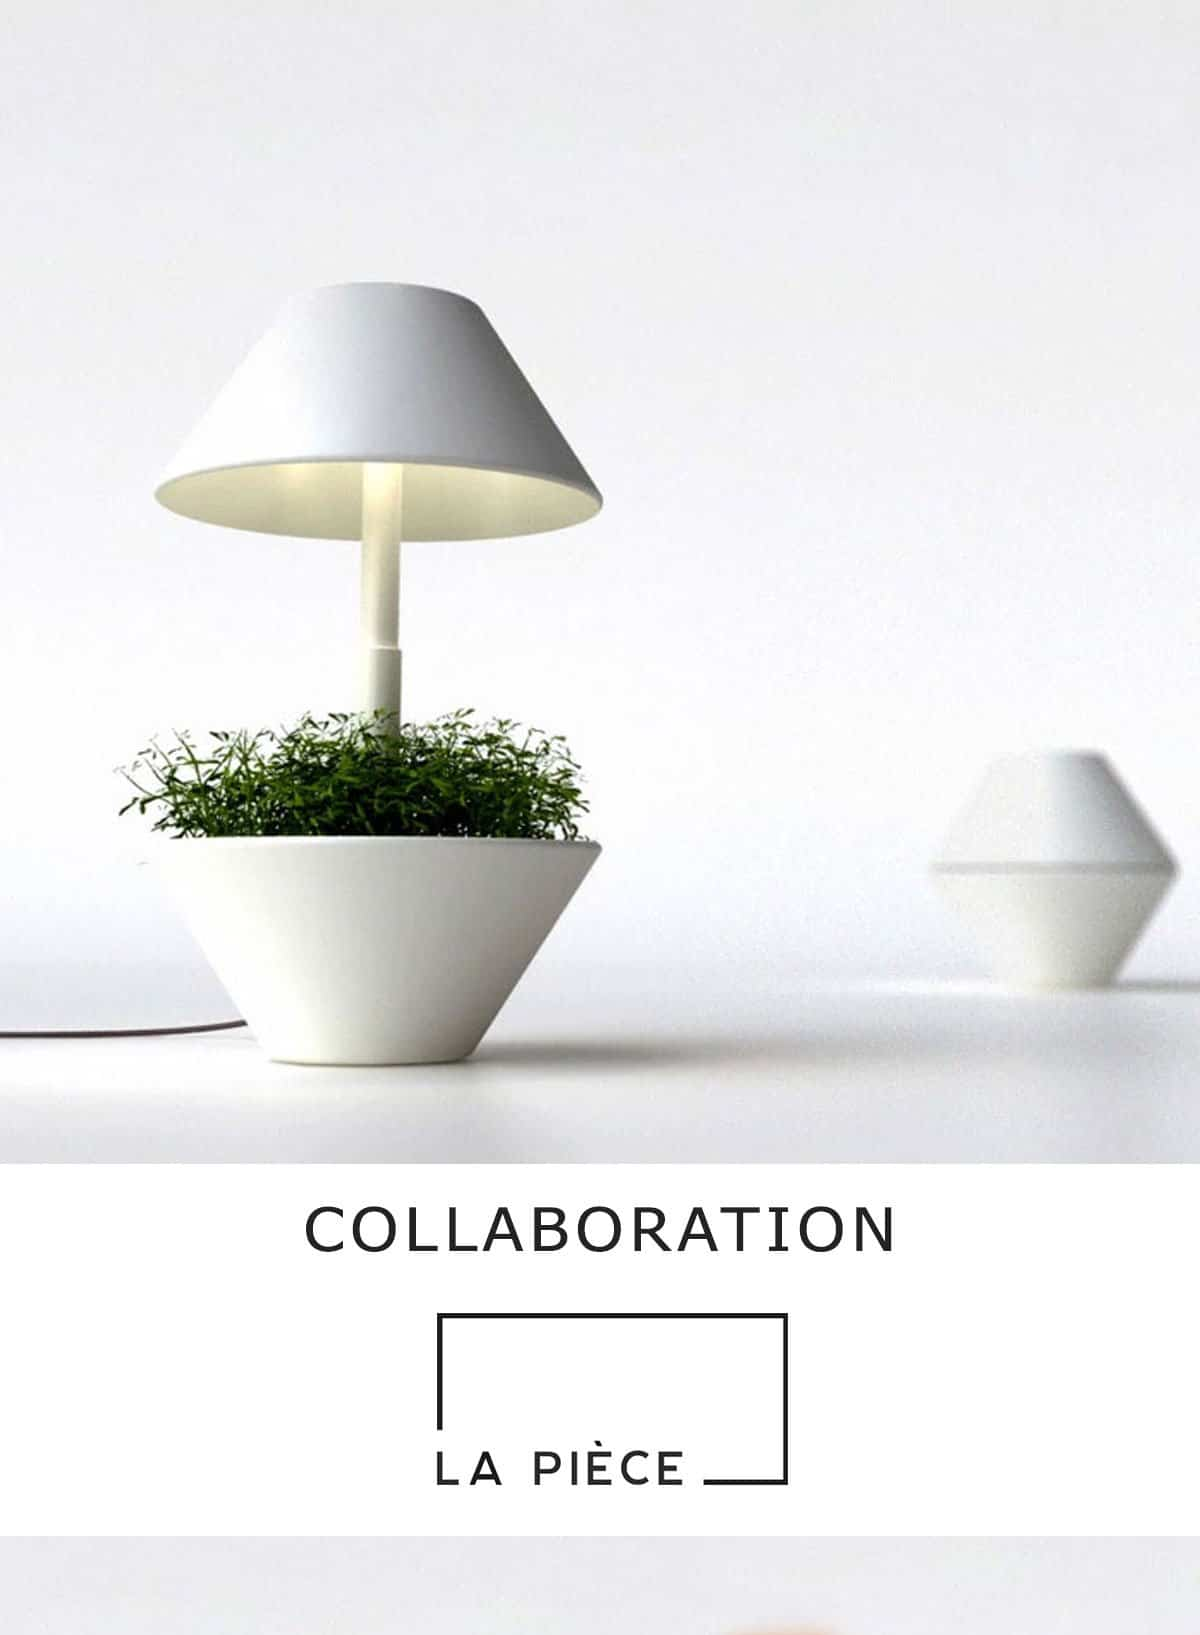 Collaboration-LaPiece-lumiere-et-plante